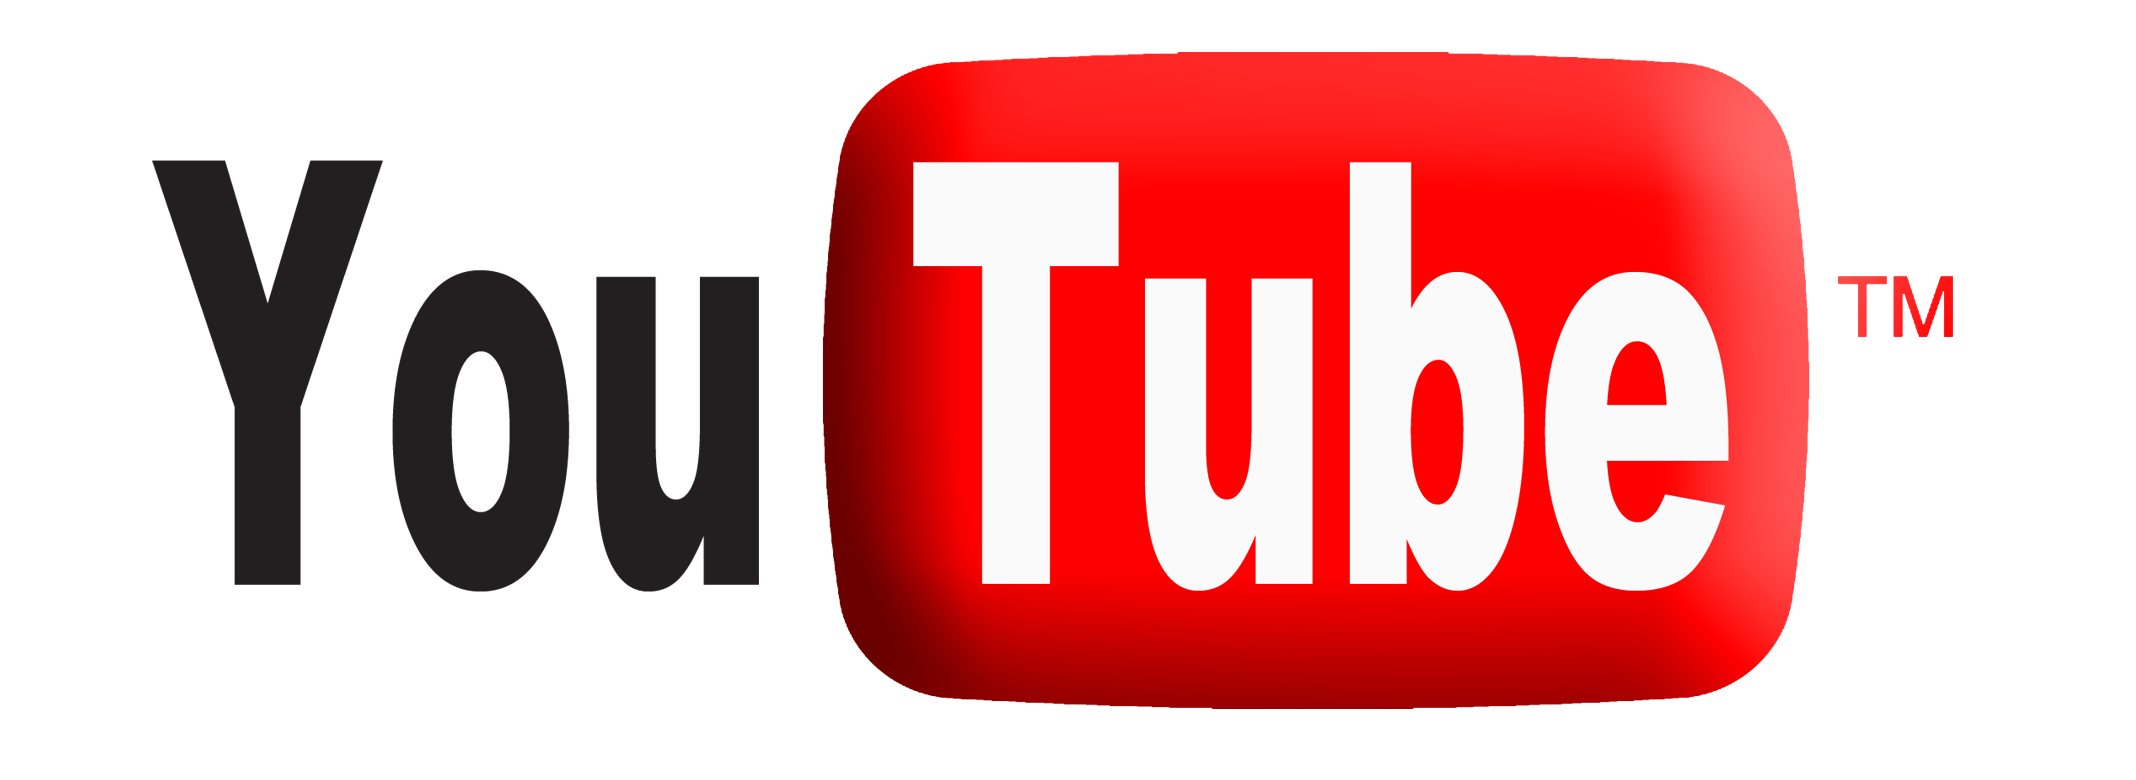 youtube_PNG16.png